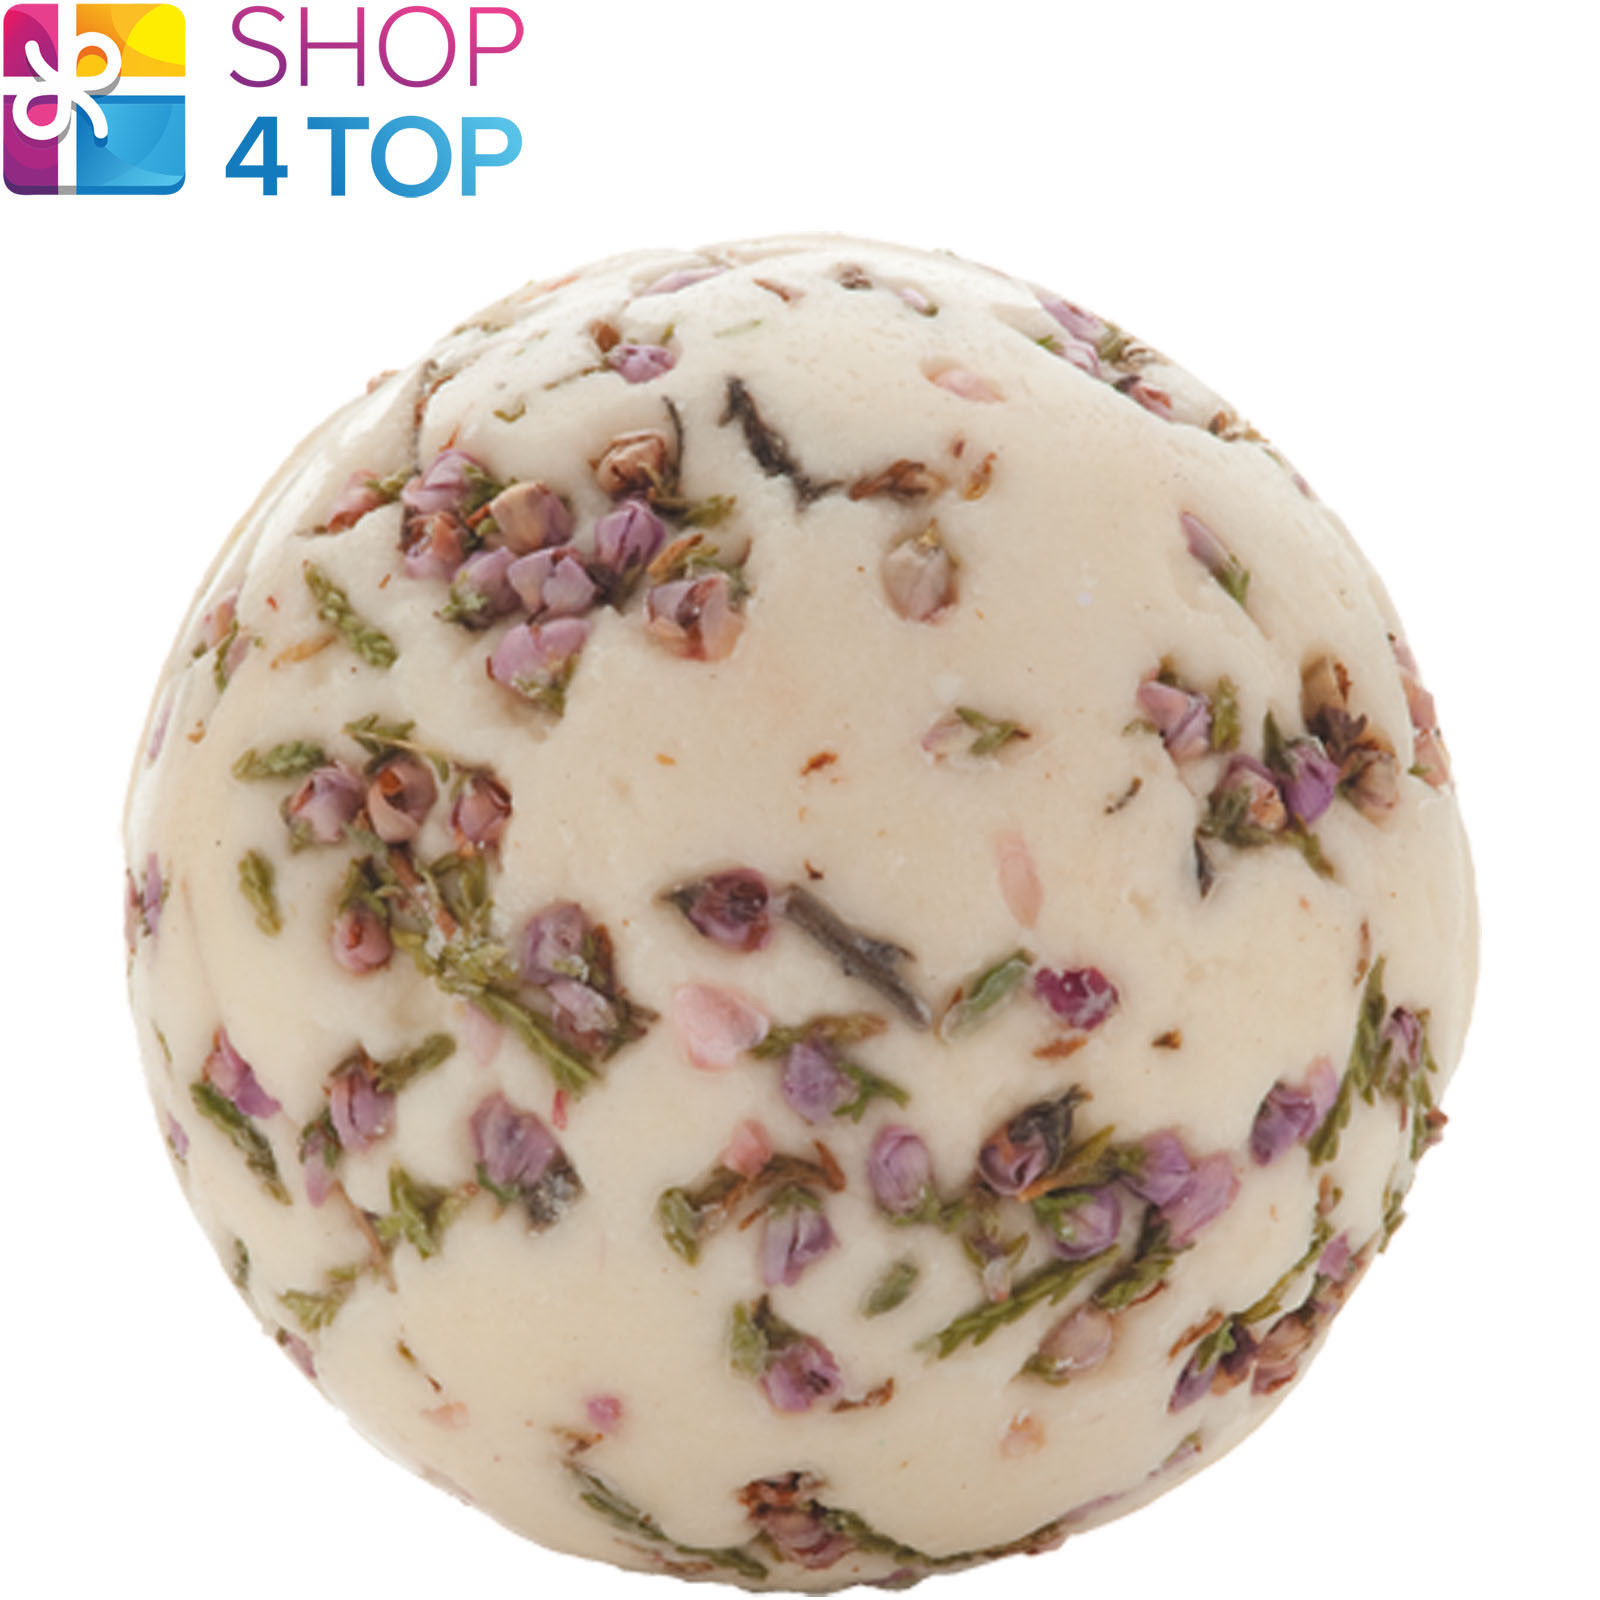 Primary image for JASMINE AND COTTON BATH CREAMER BOMB COSMETICS MAGNOLIA HANDMADE NATURAL NEW